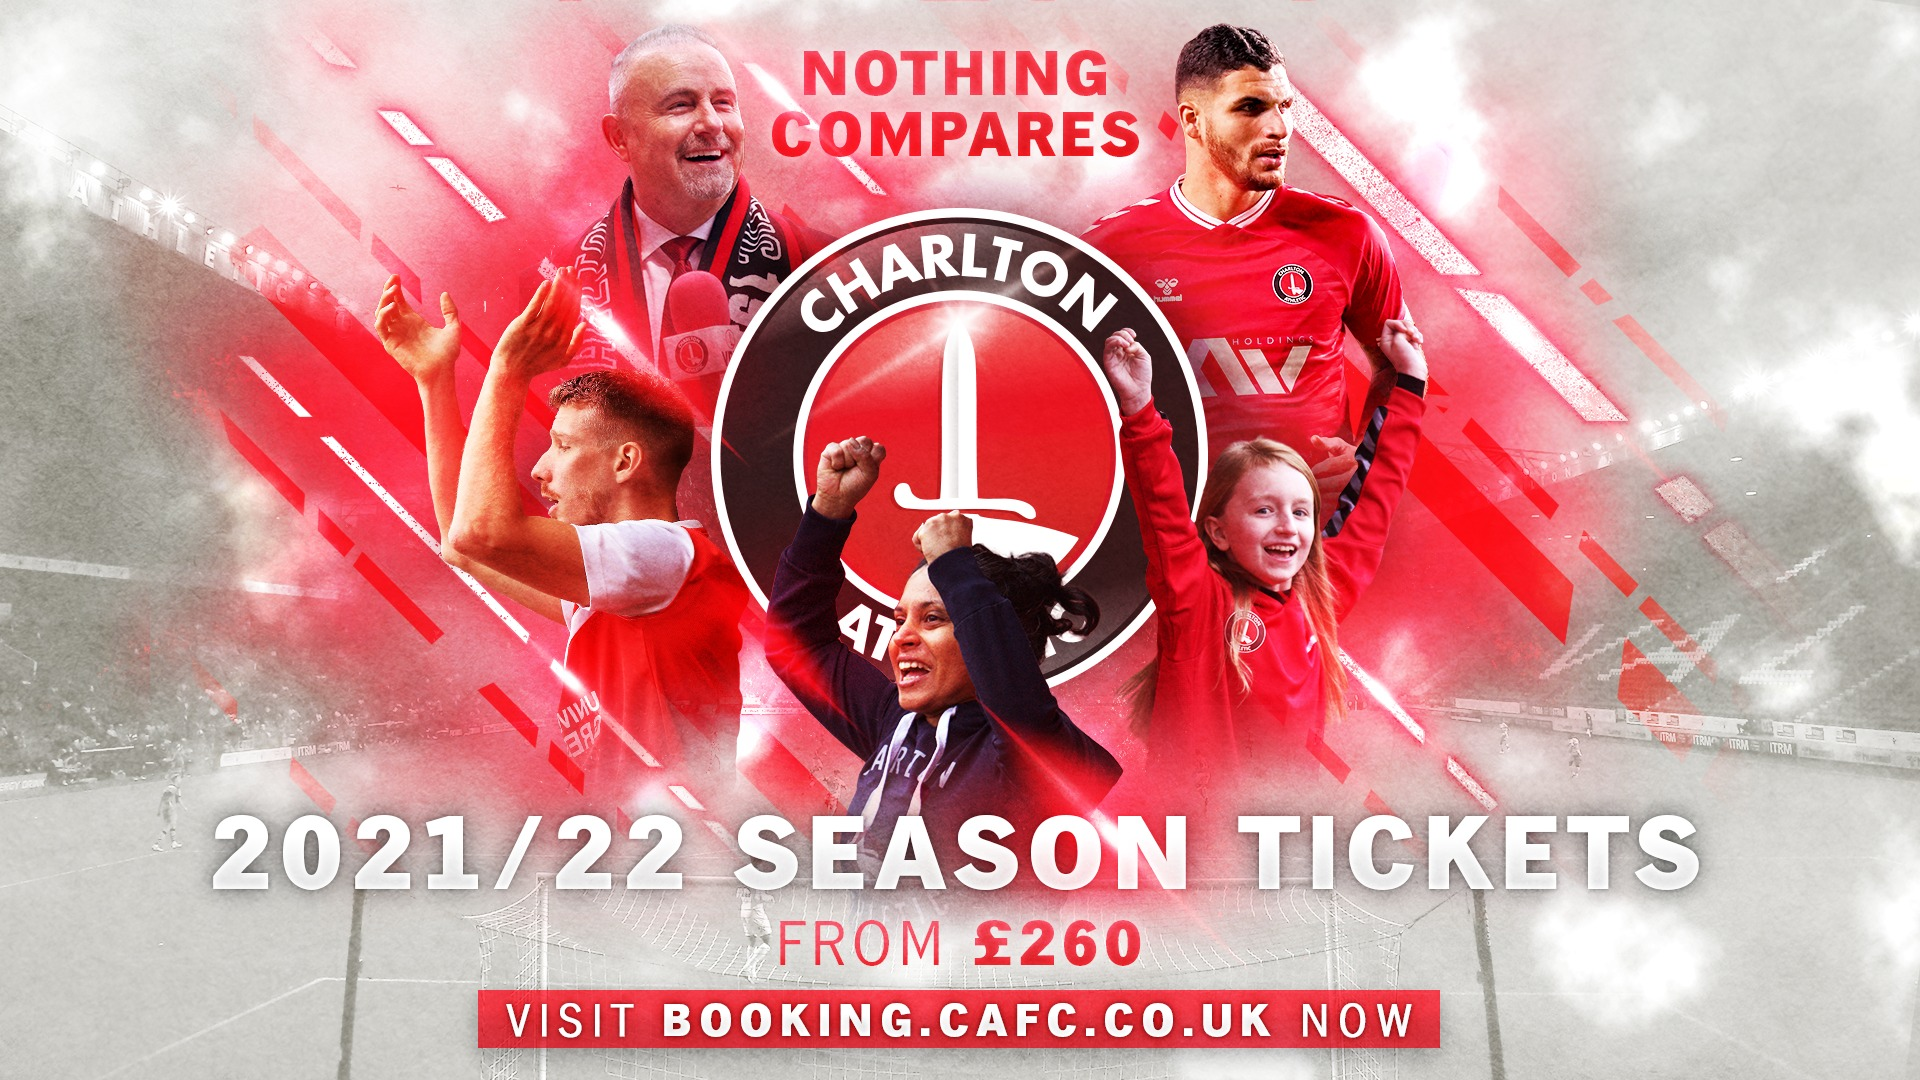 2021/22 season tickets to go on sale (May 2021)